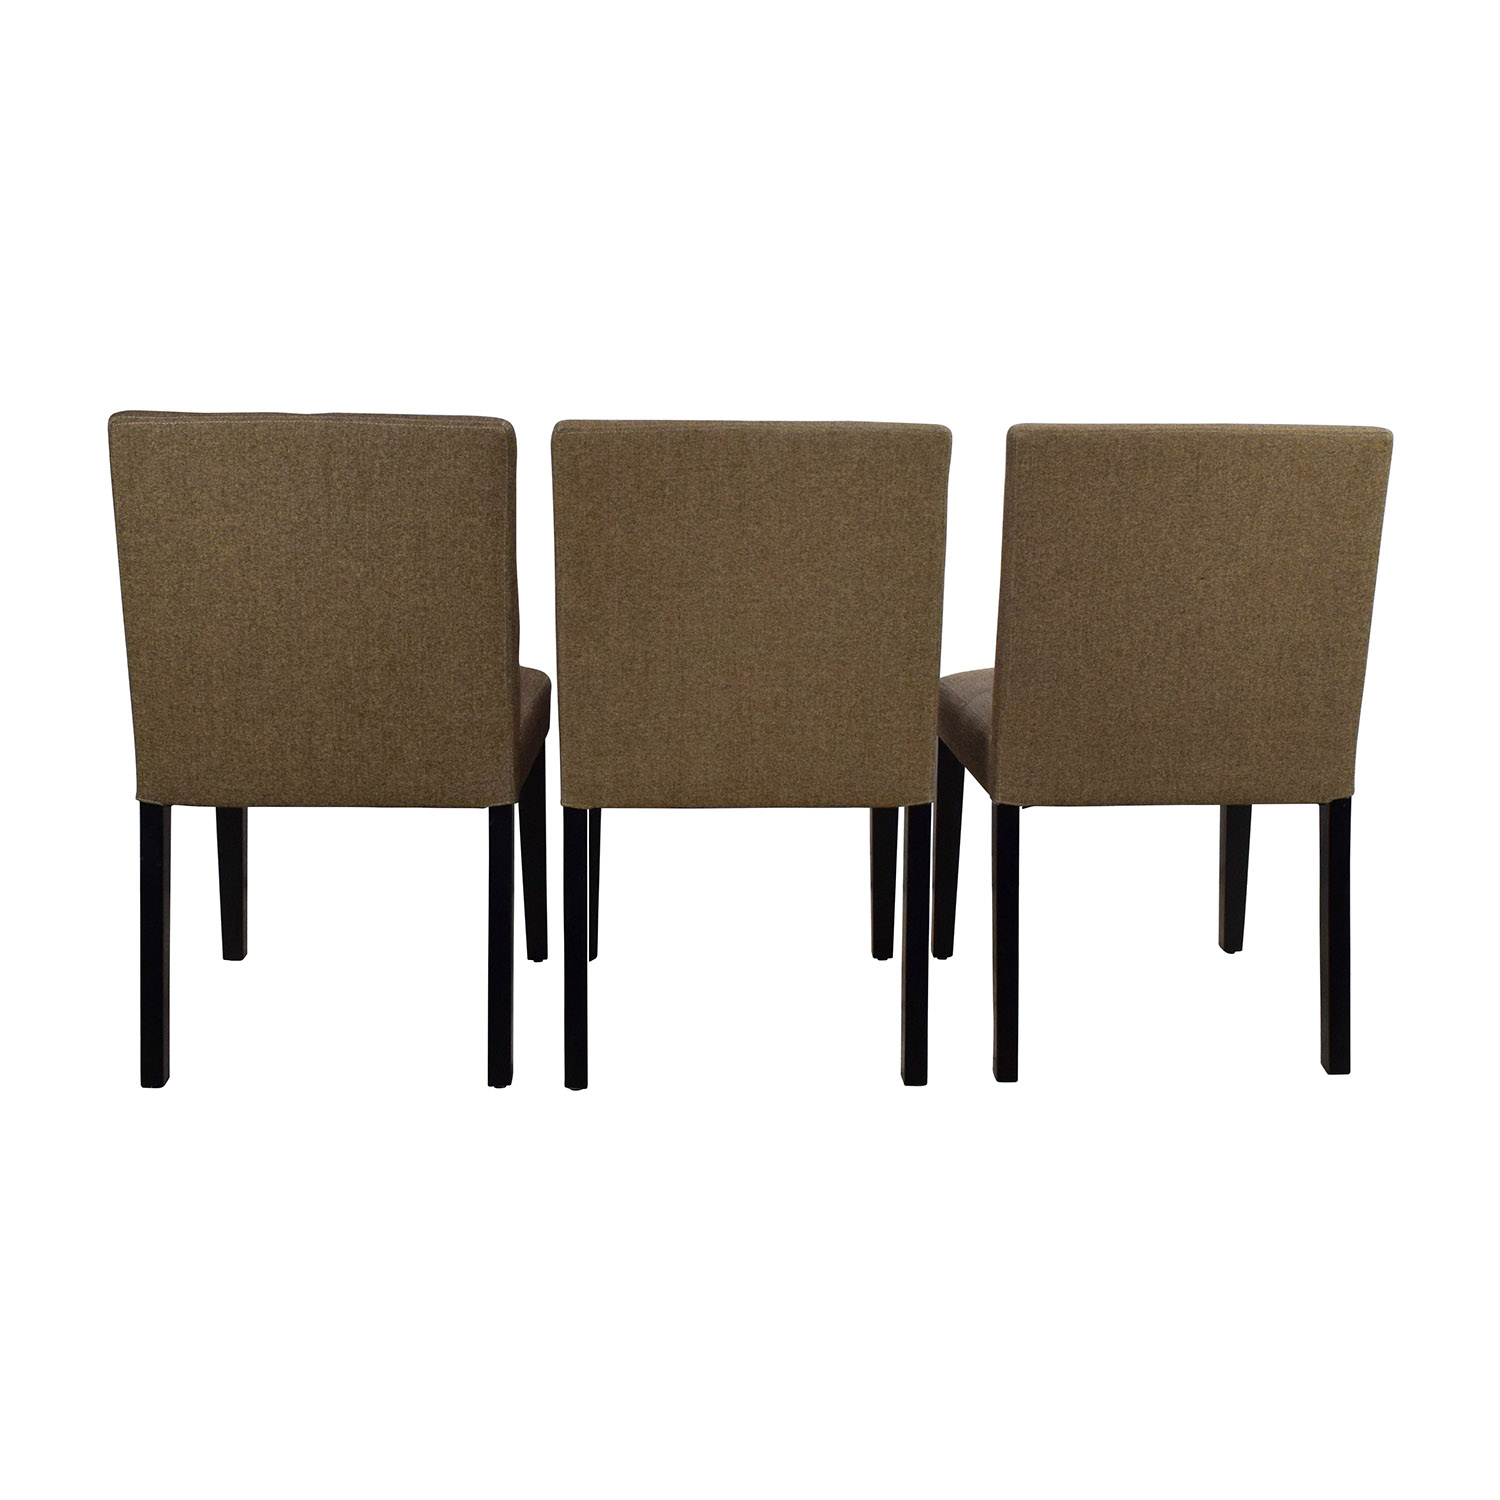 Crate and barrel outdoor furniture sale -  Crate Barrel Epoch Chairs Sale